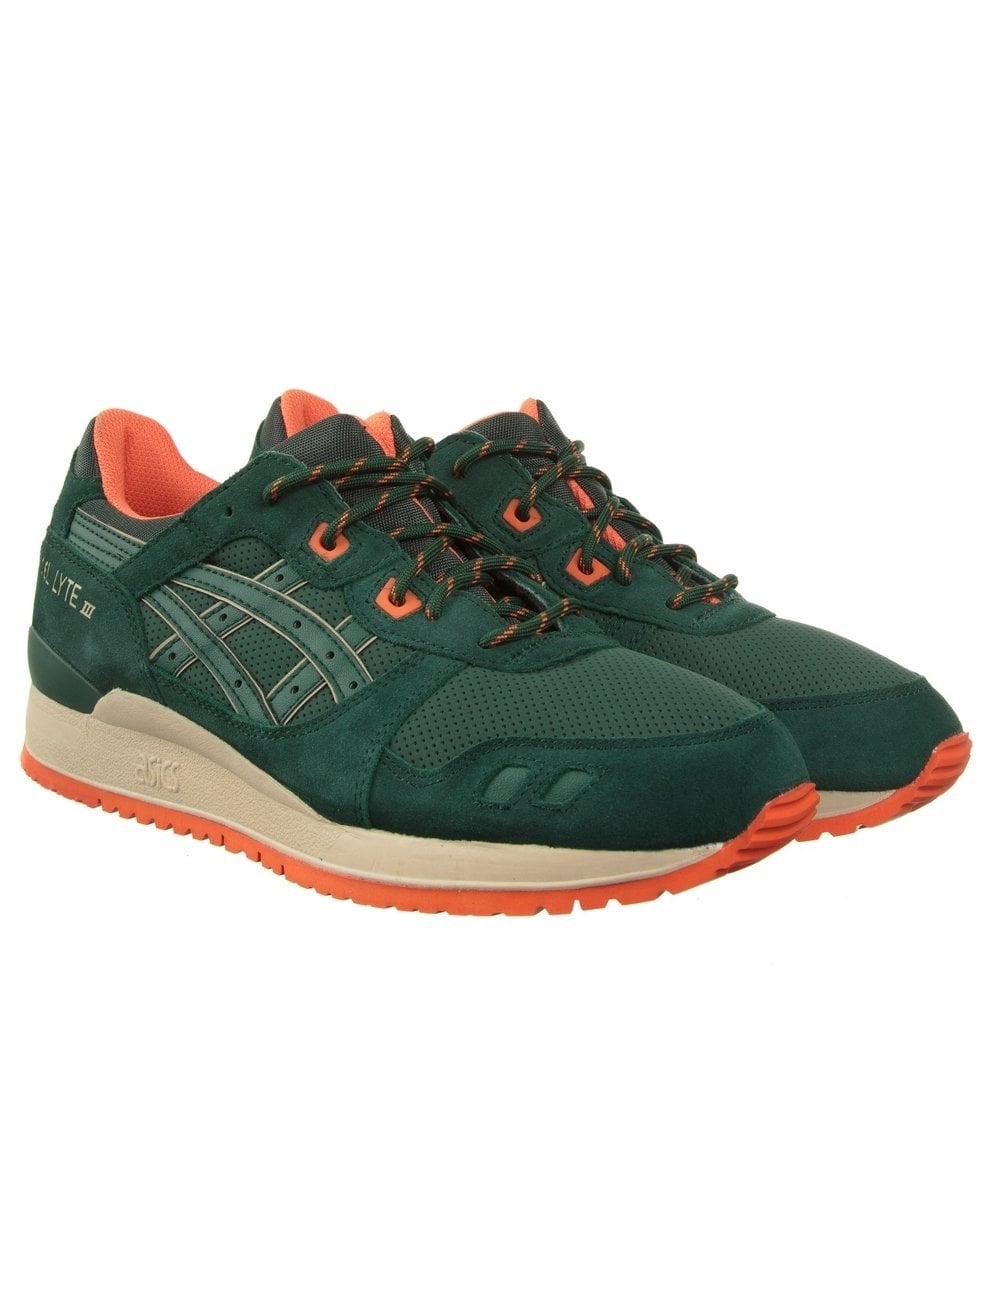 the latest e7a70 a28f3 Gel Lyte III Shoes - Dark Green